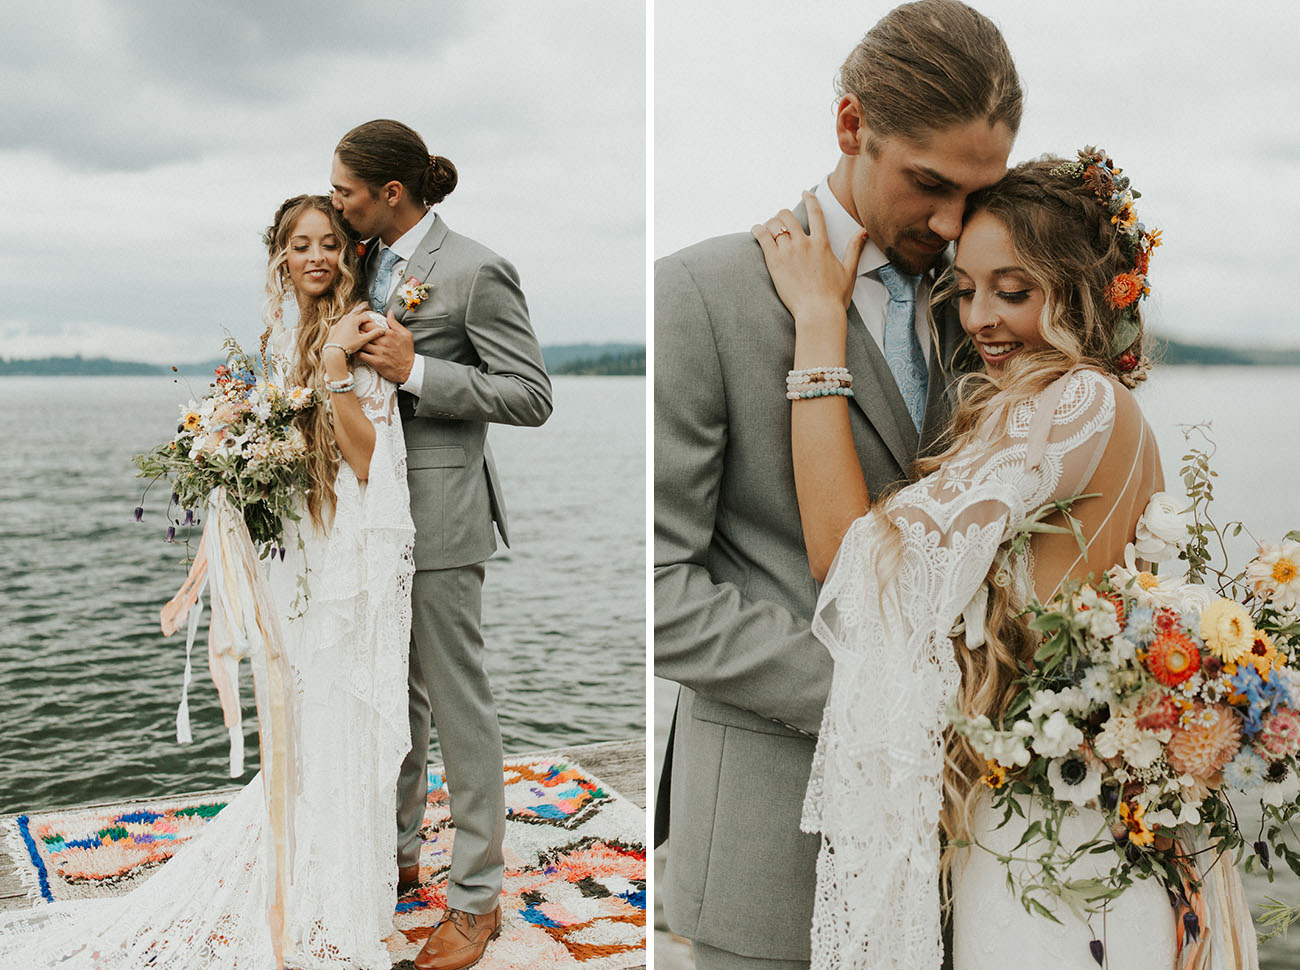 The groom was wearing a light grey suit, a blue tie and brown shoes plus a man bun